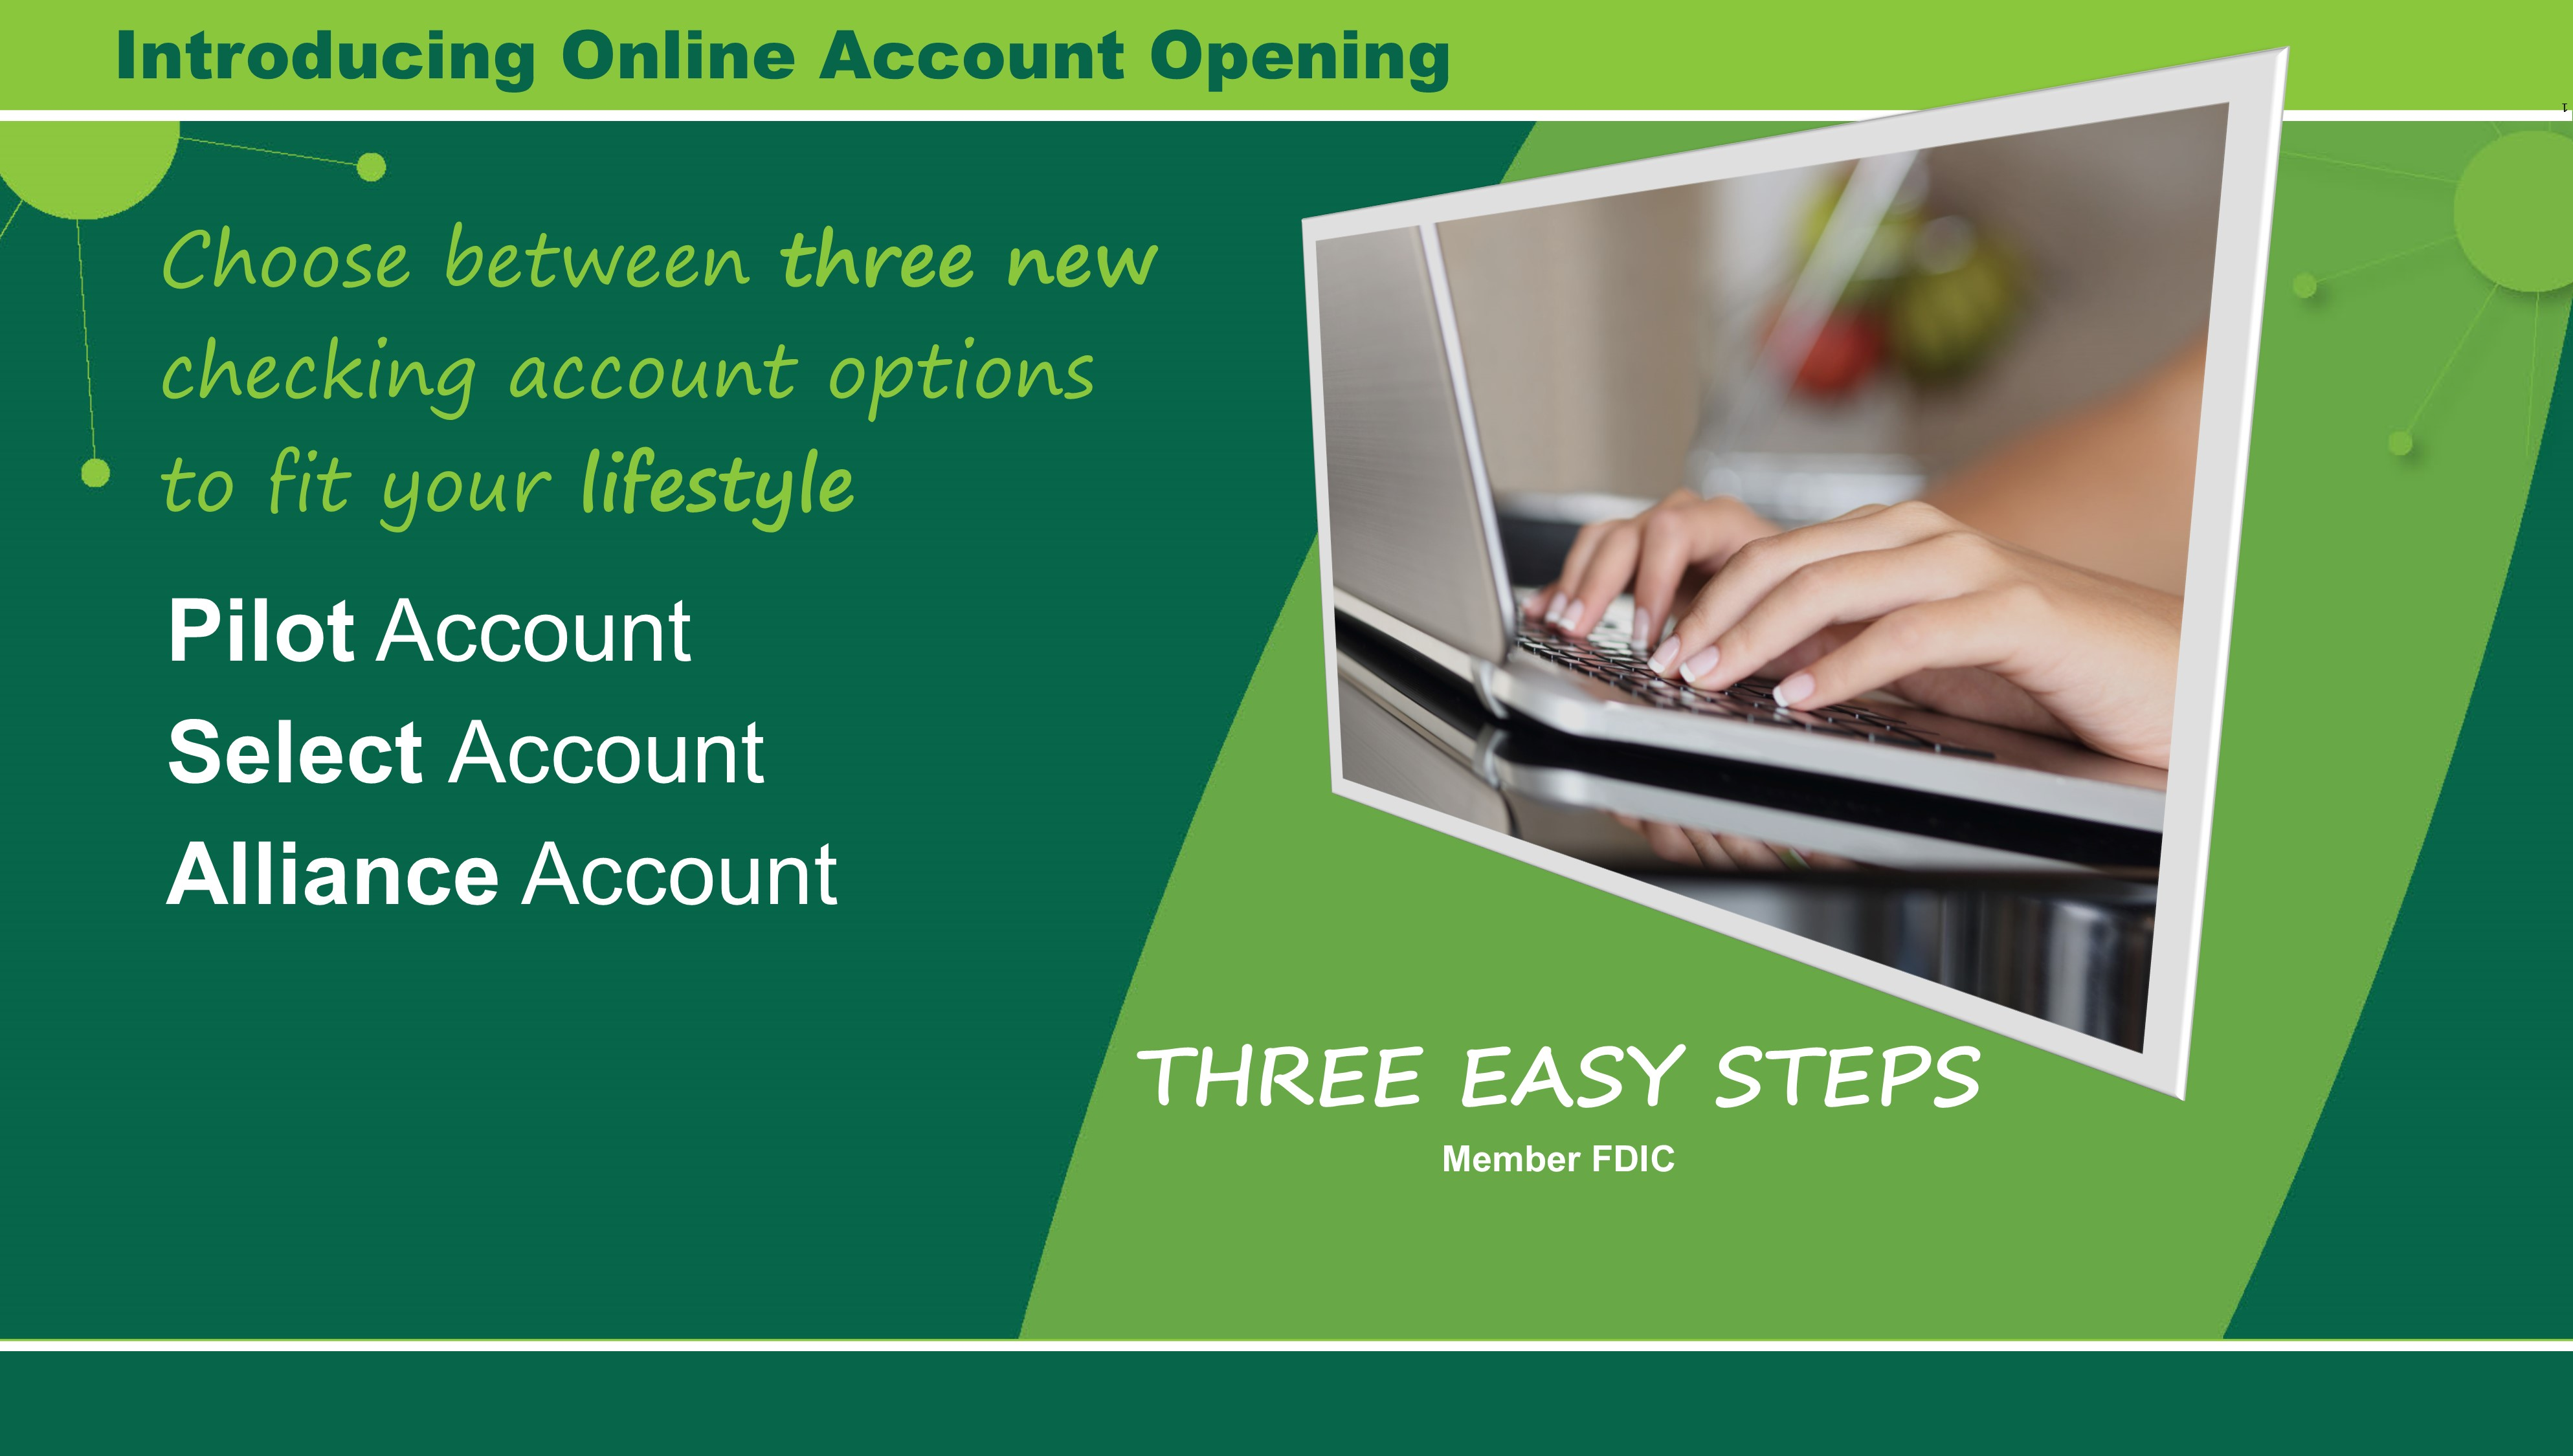 Introducing online account opening! Choose between three new checking account options to fit your lifestyle. There are just three easy steps to open a Pilot Account, Select Account or Alliance Account. Member FDIC.